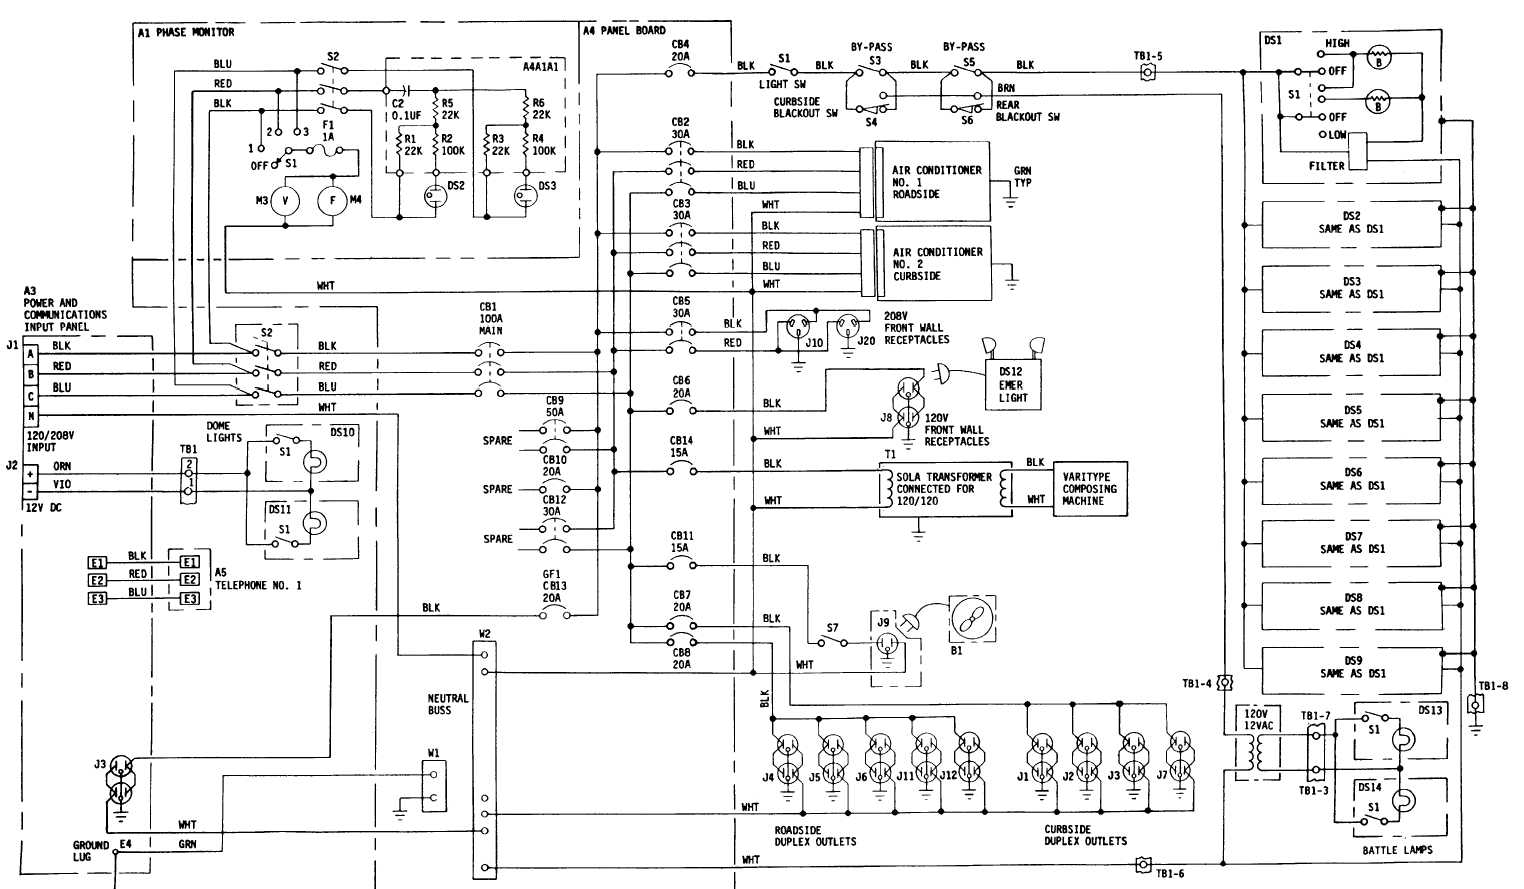 FO-7. Drafting Support Section Electrical Schematic